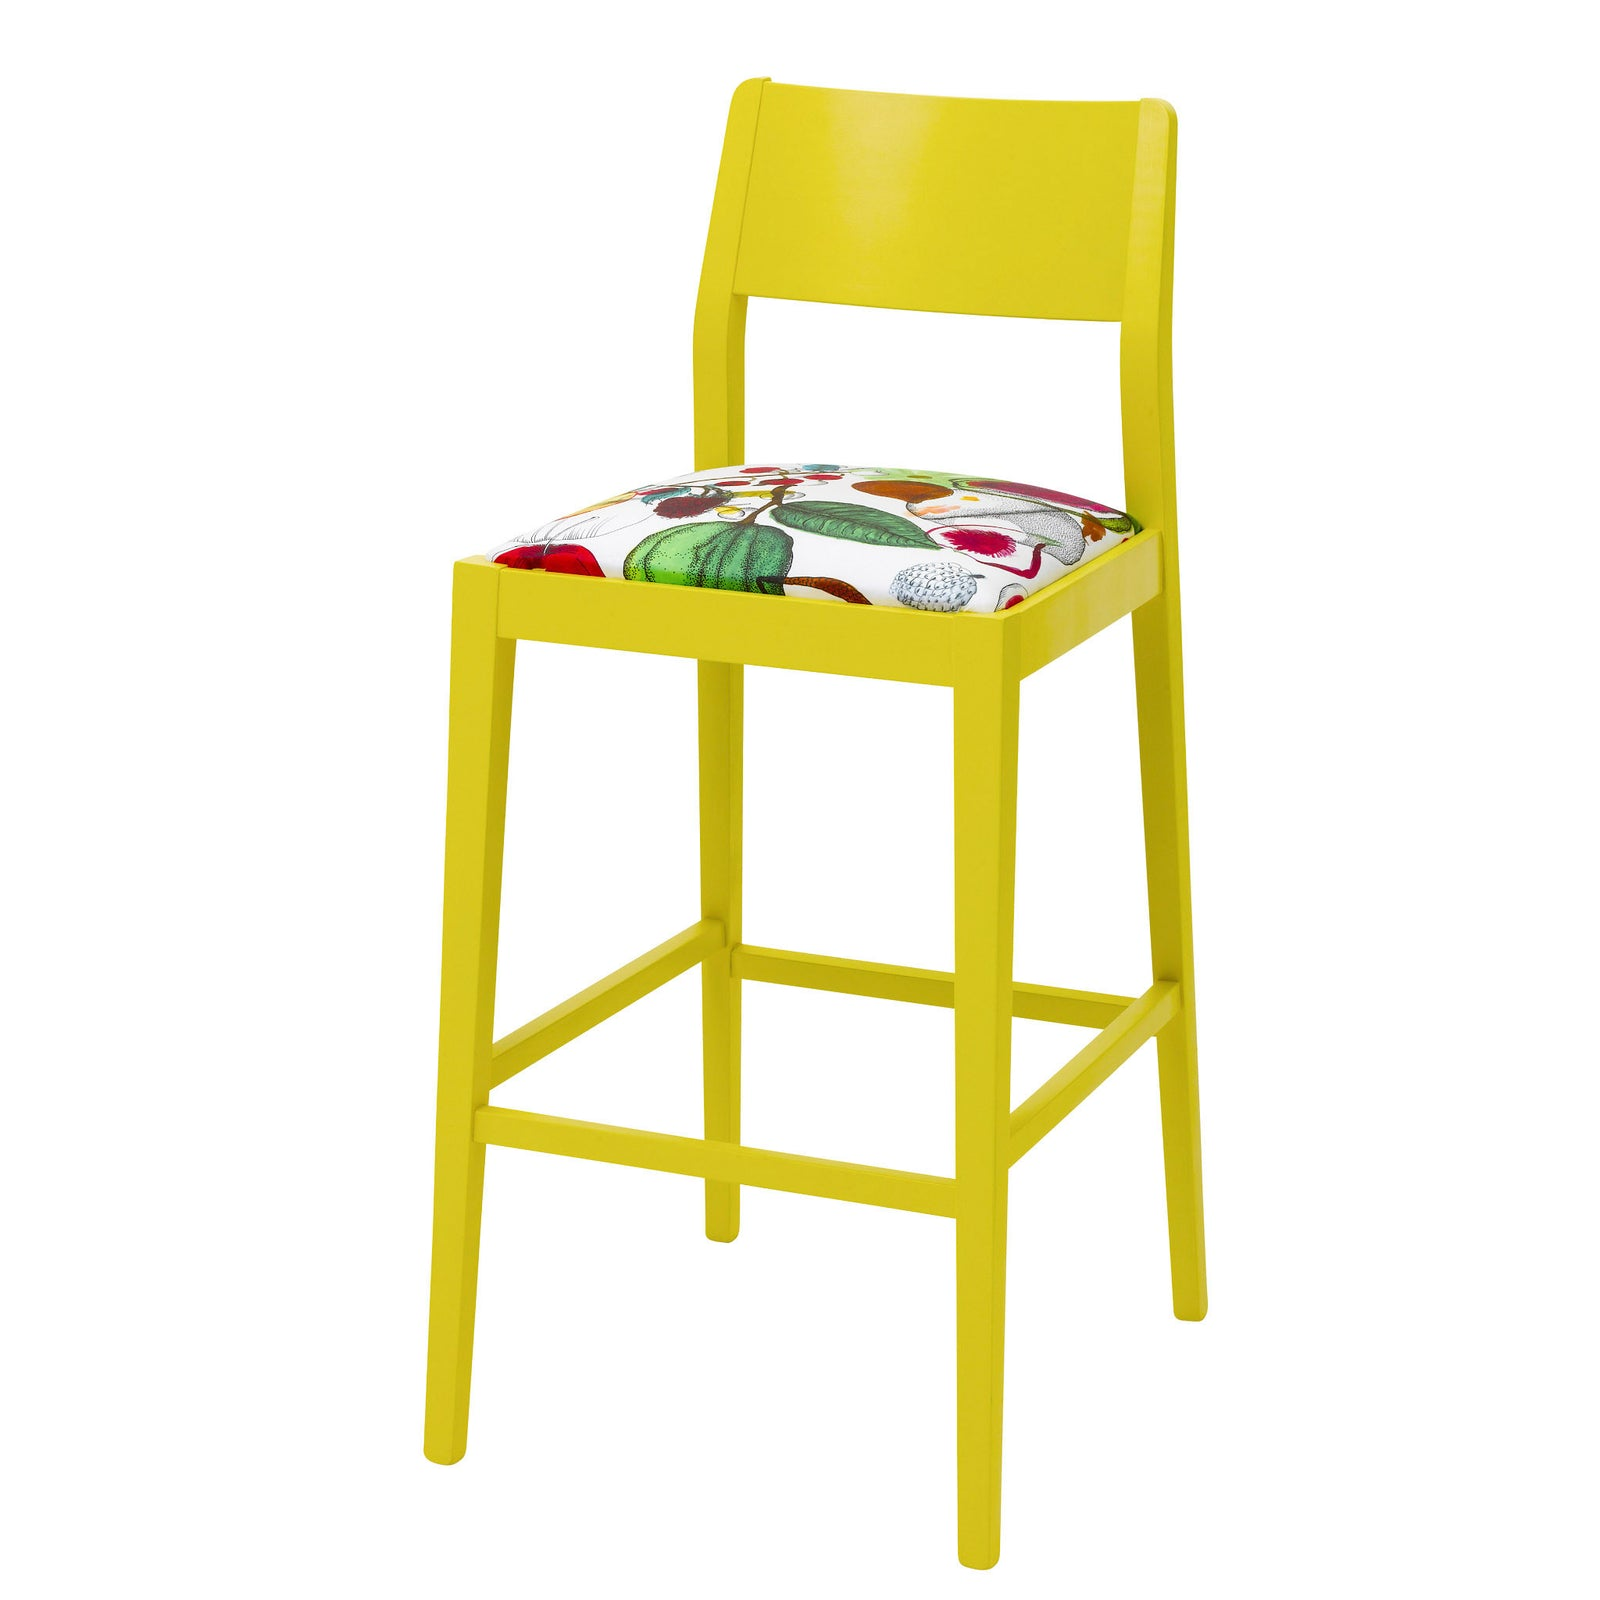 The James design bar stool upholstered in Christian Lacroix print finished in Yellow.